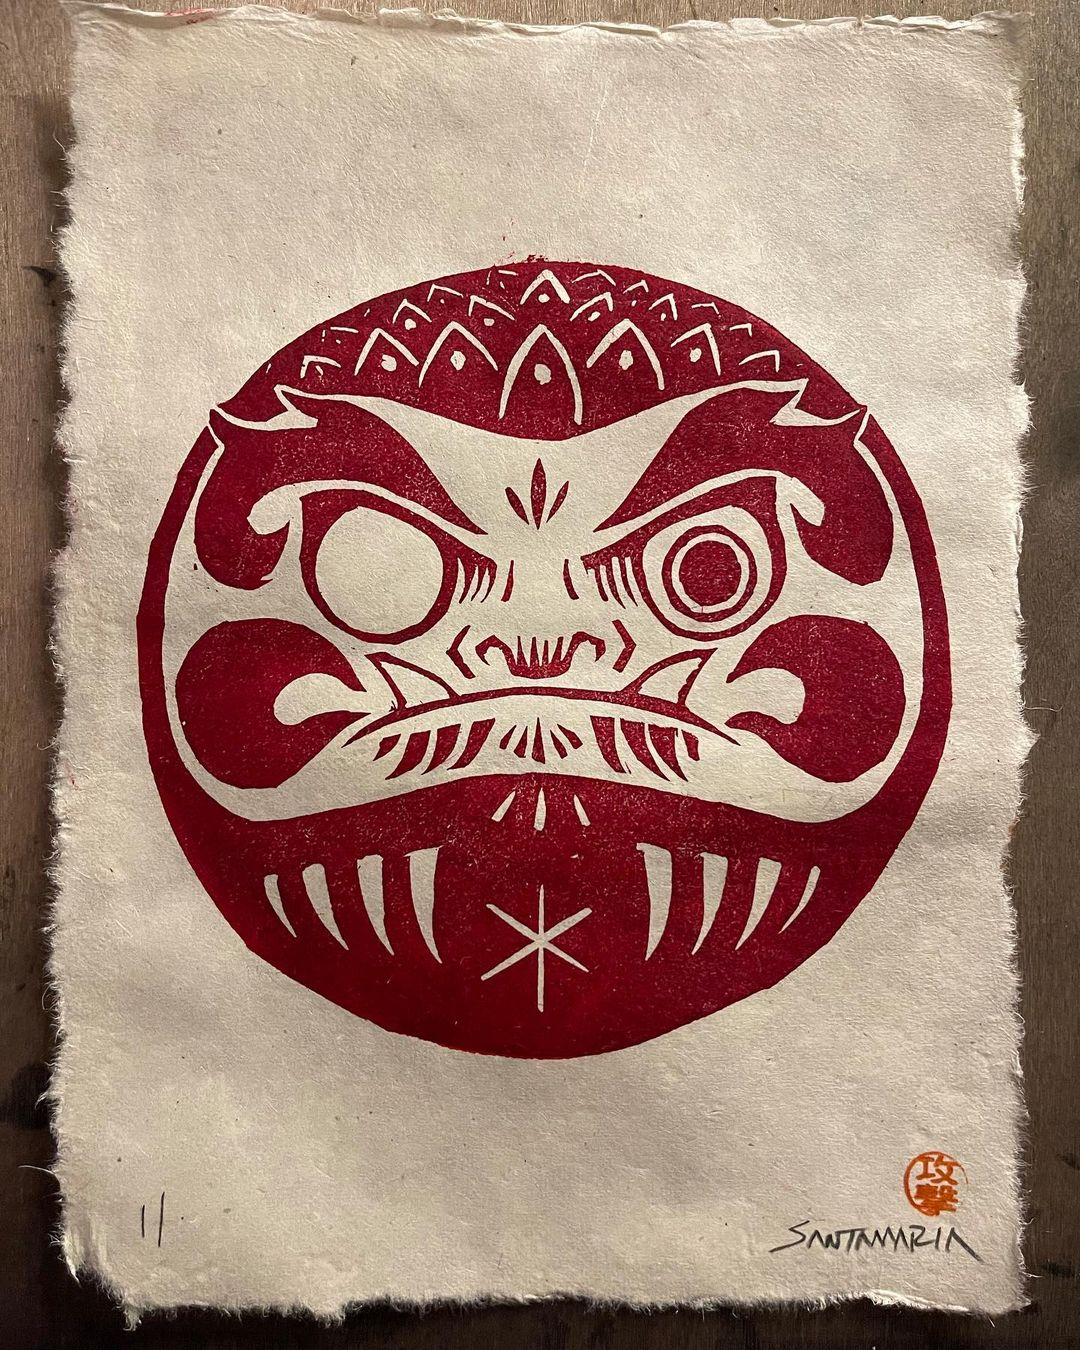 Attack Peter Carved linoleum wood print of daruma